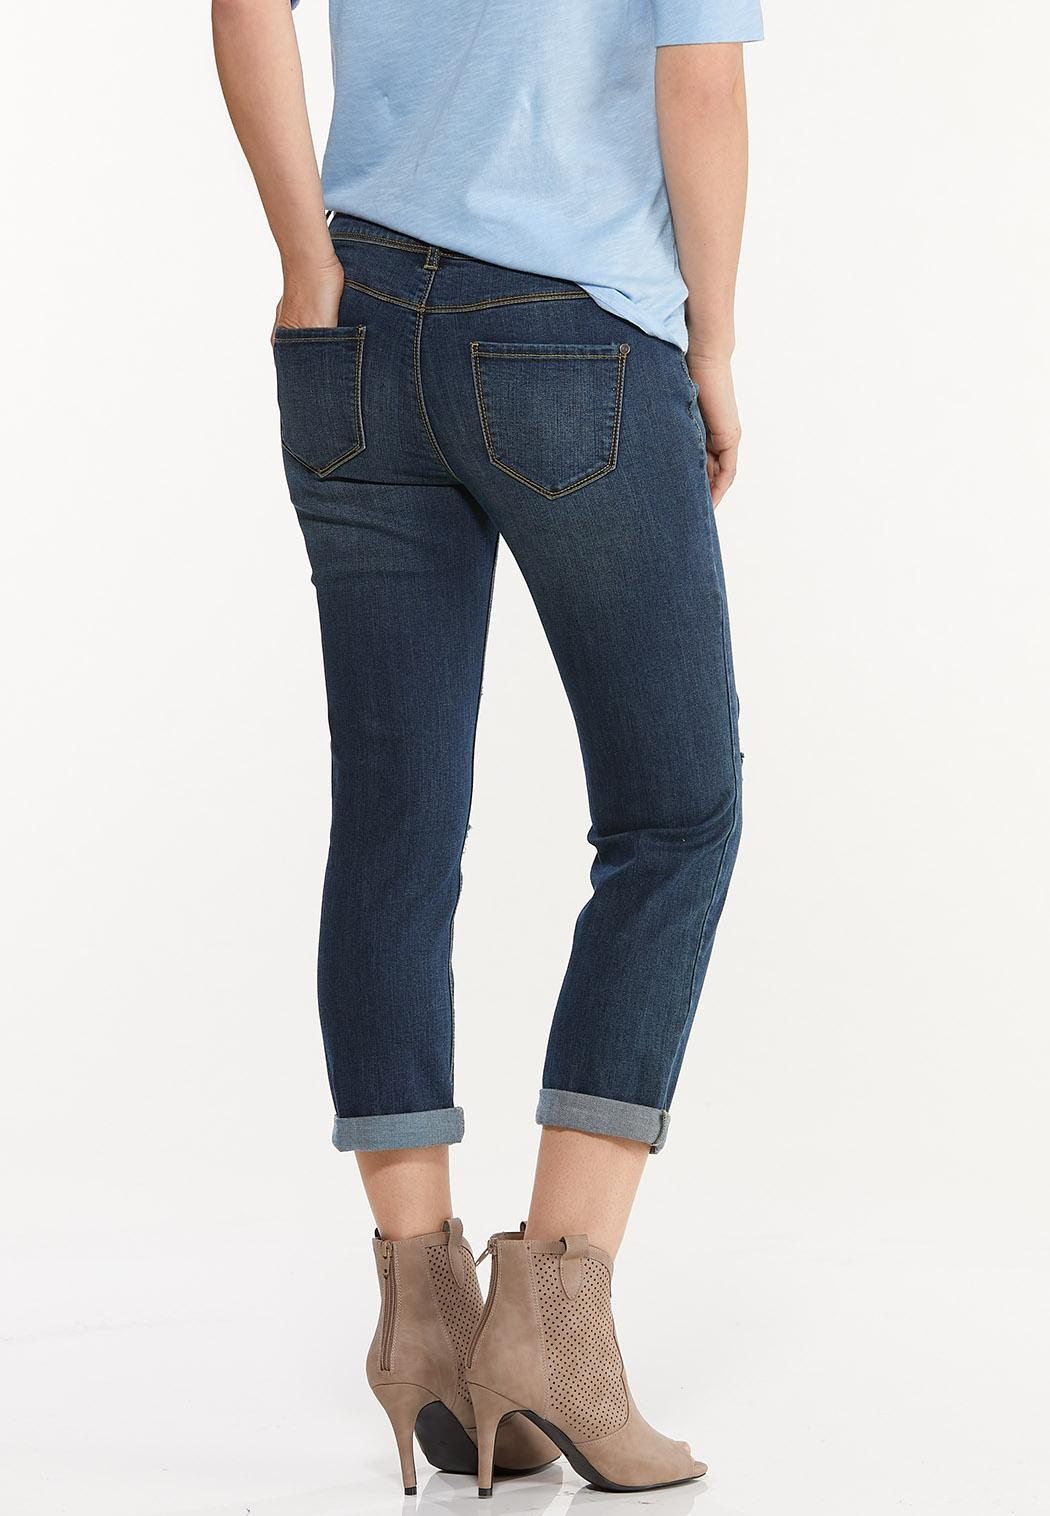 Cropped Distressed Girlfriend Jeans (Item #44522232)